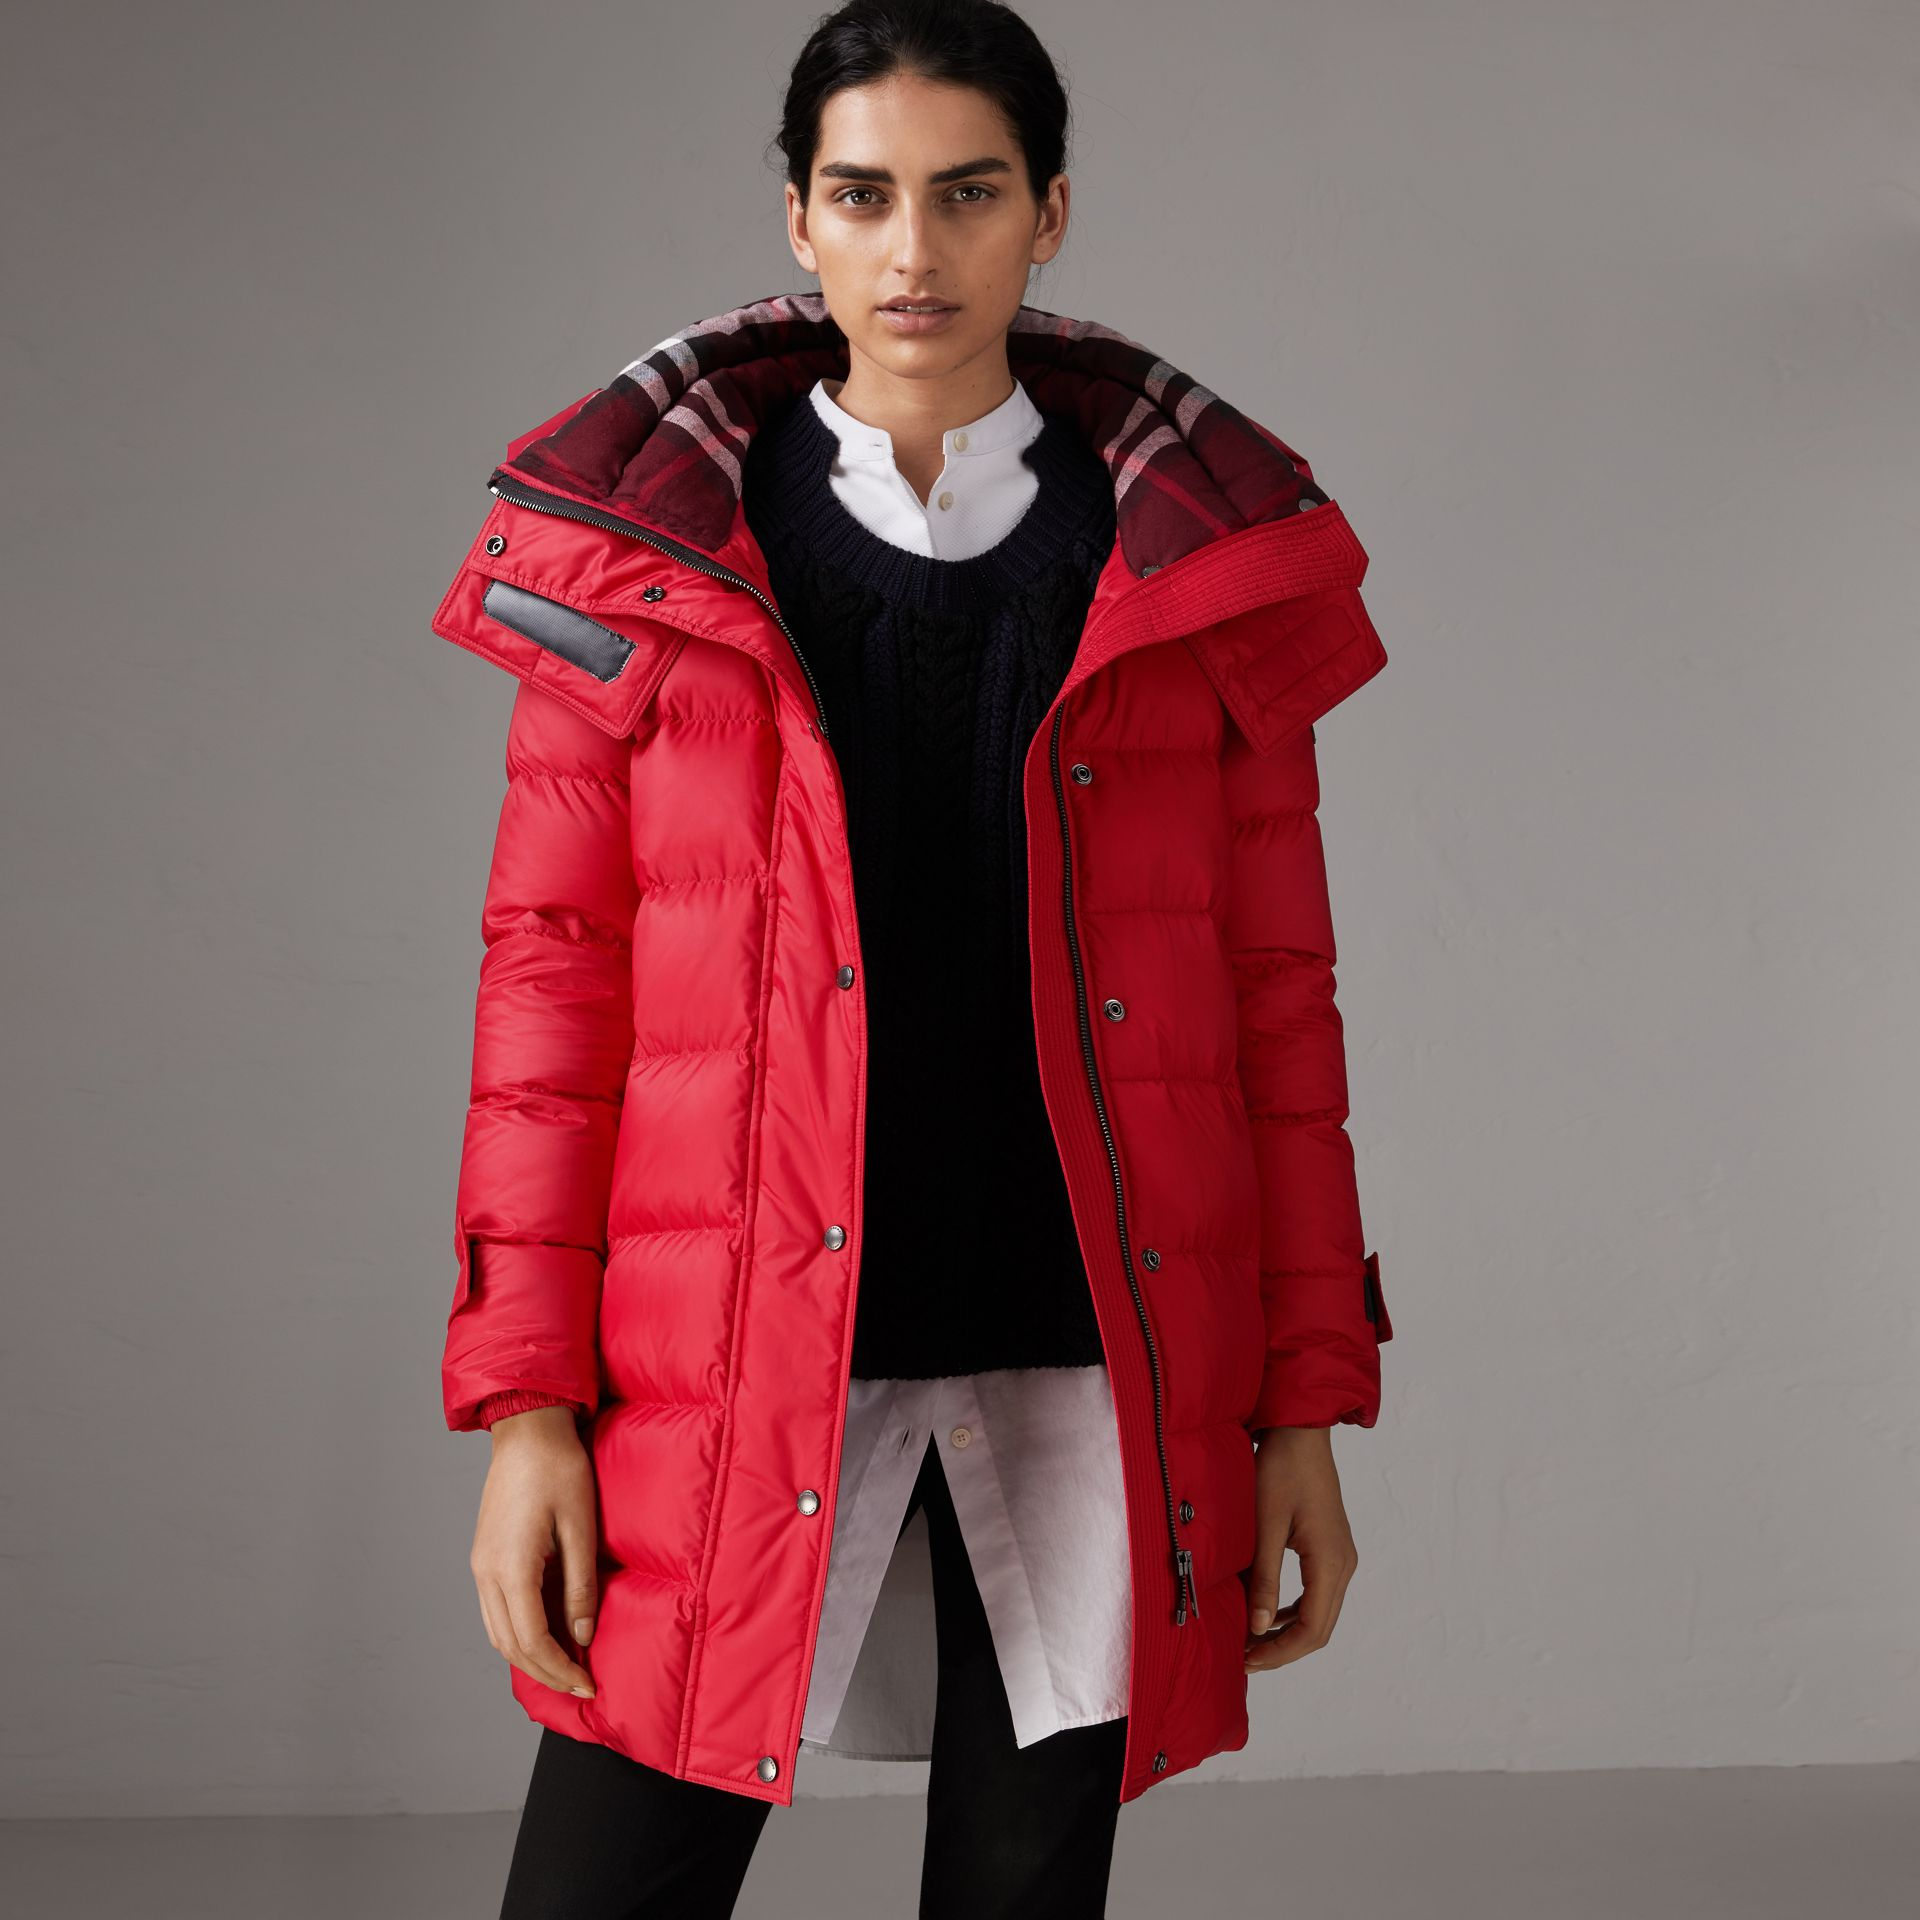 Down-filled Puffer Coat With Detachable Hood in Parade Red - Women | Burberry - gallery image 1